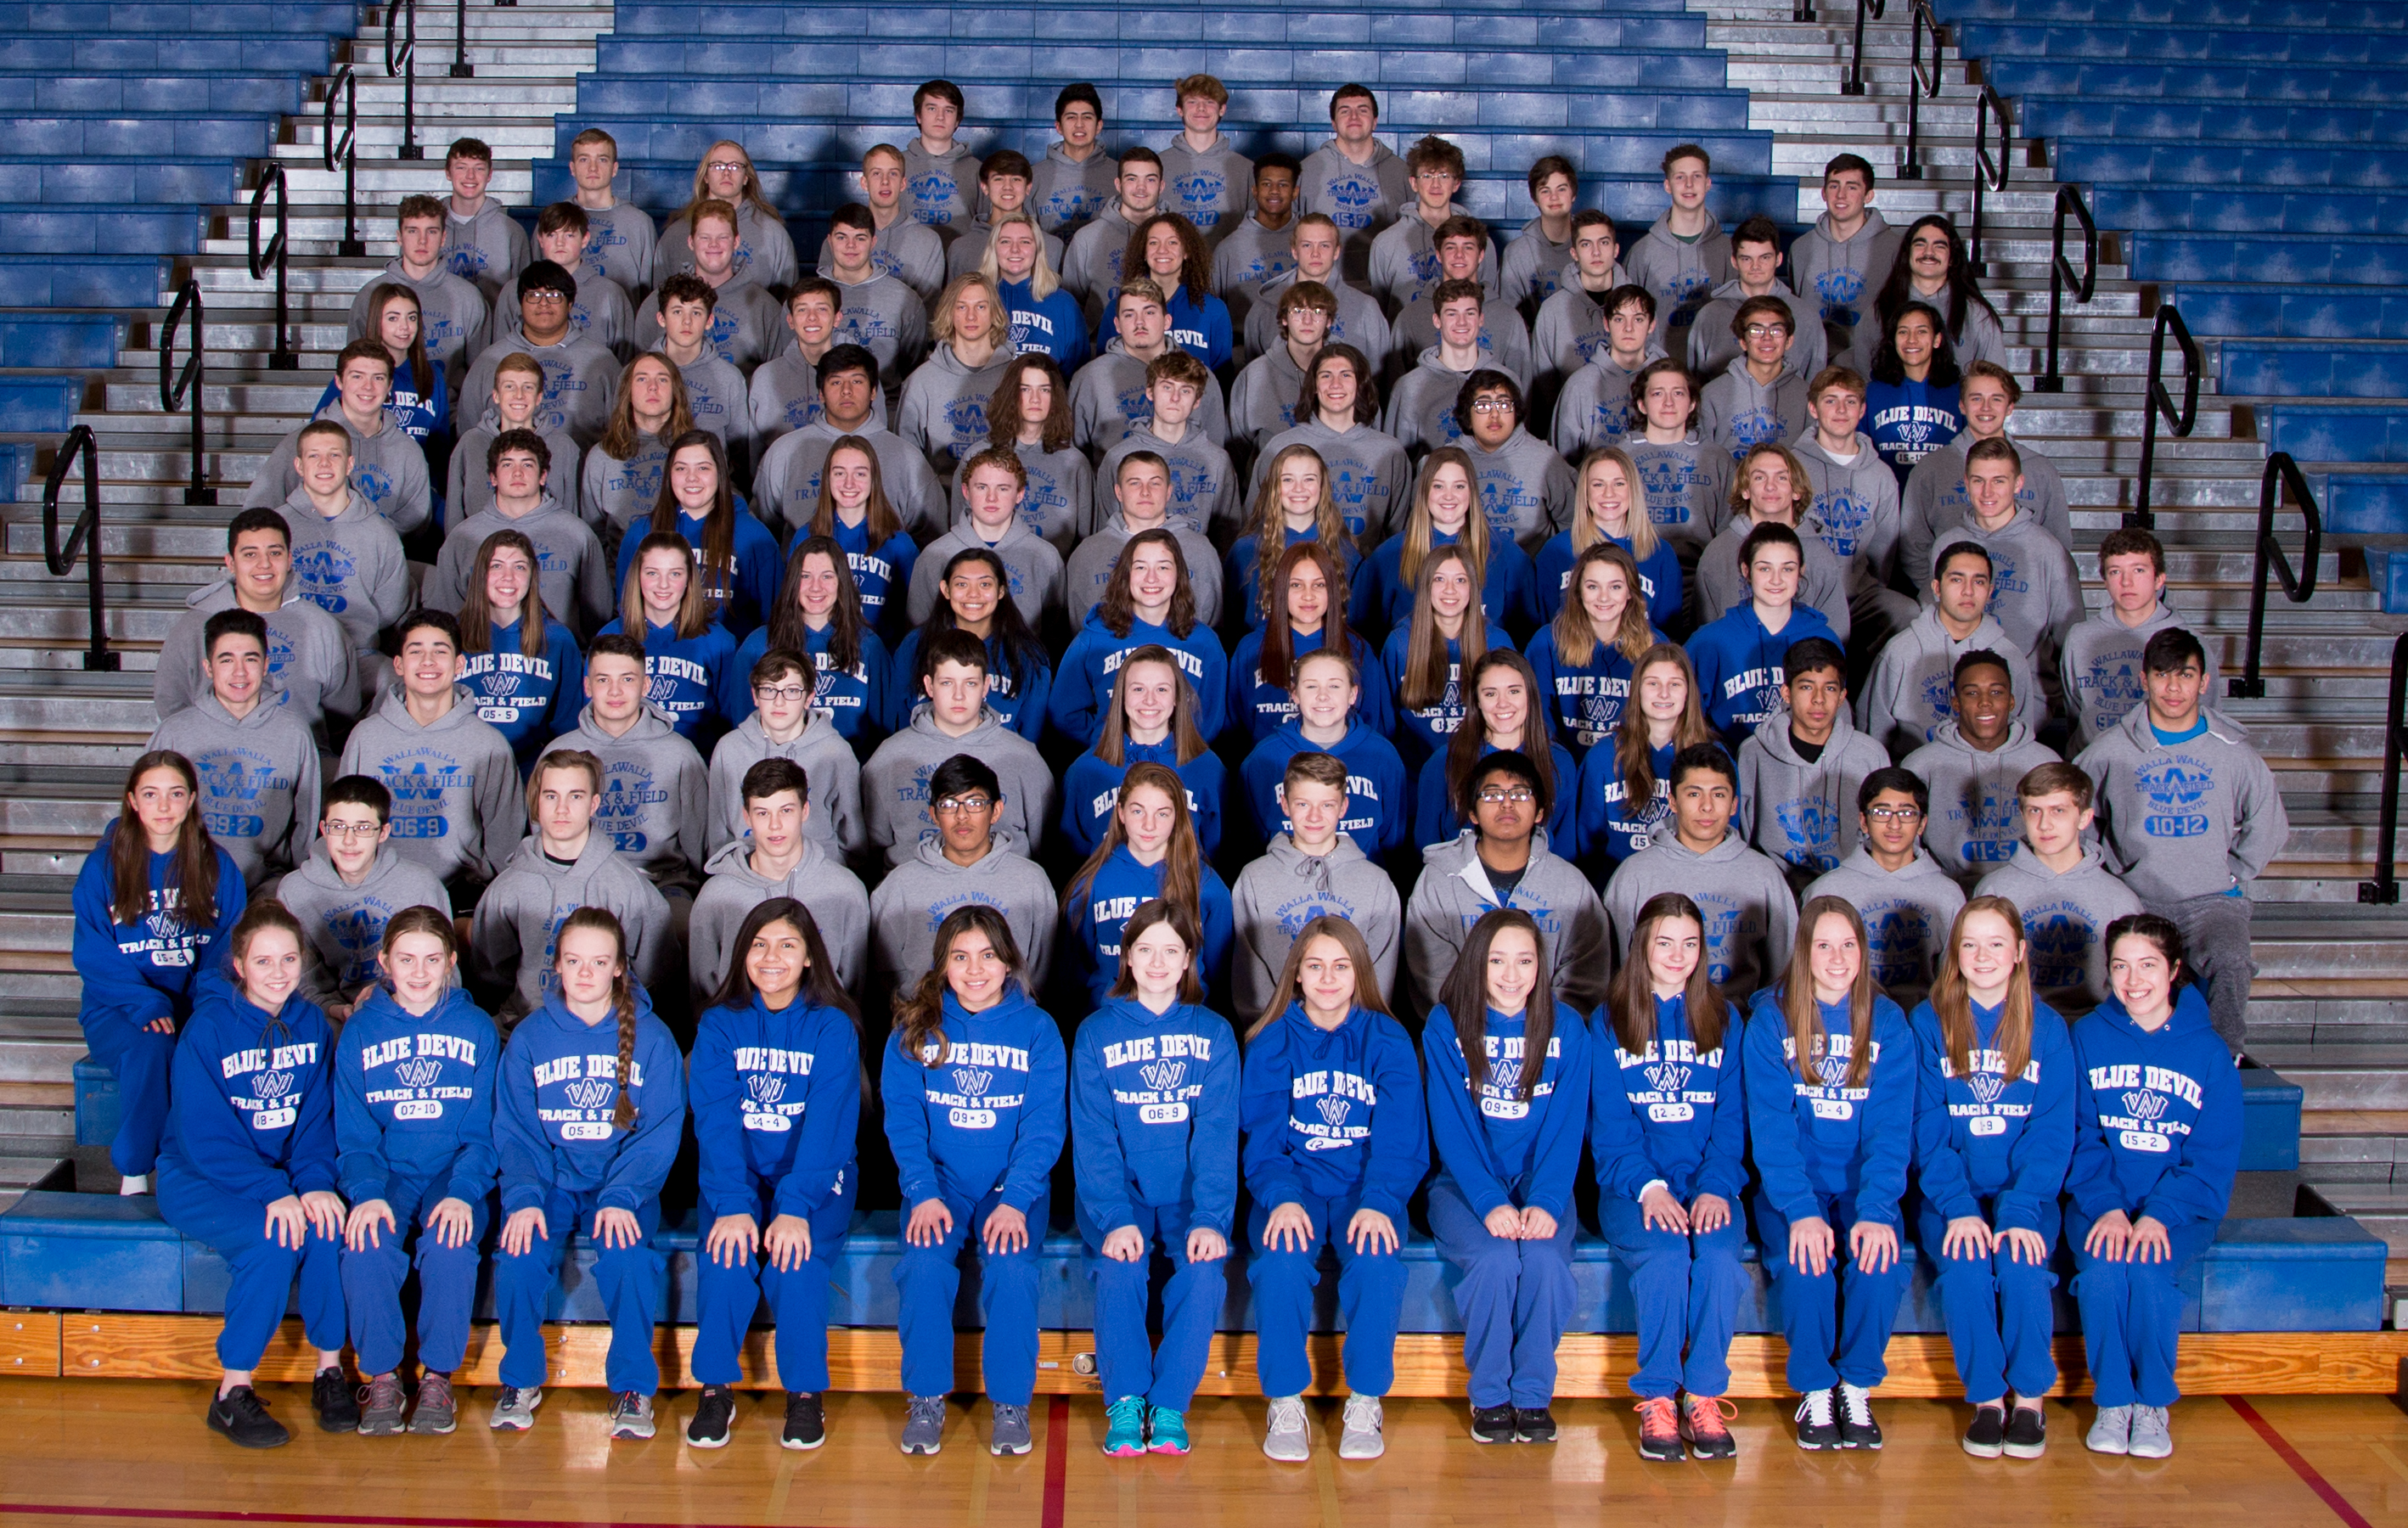 images/athletics/Track/2019_Track_Team.jpg